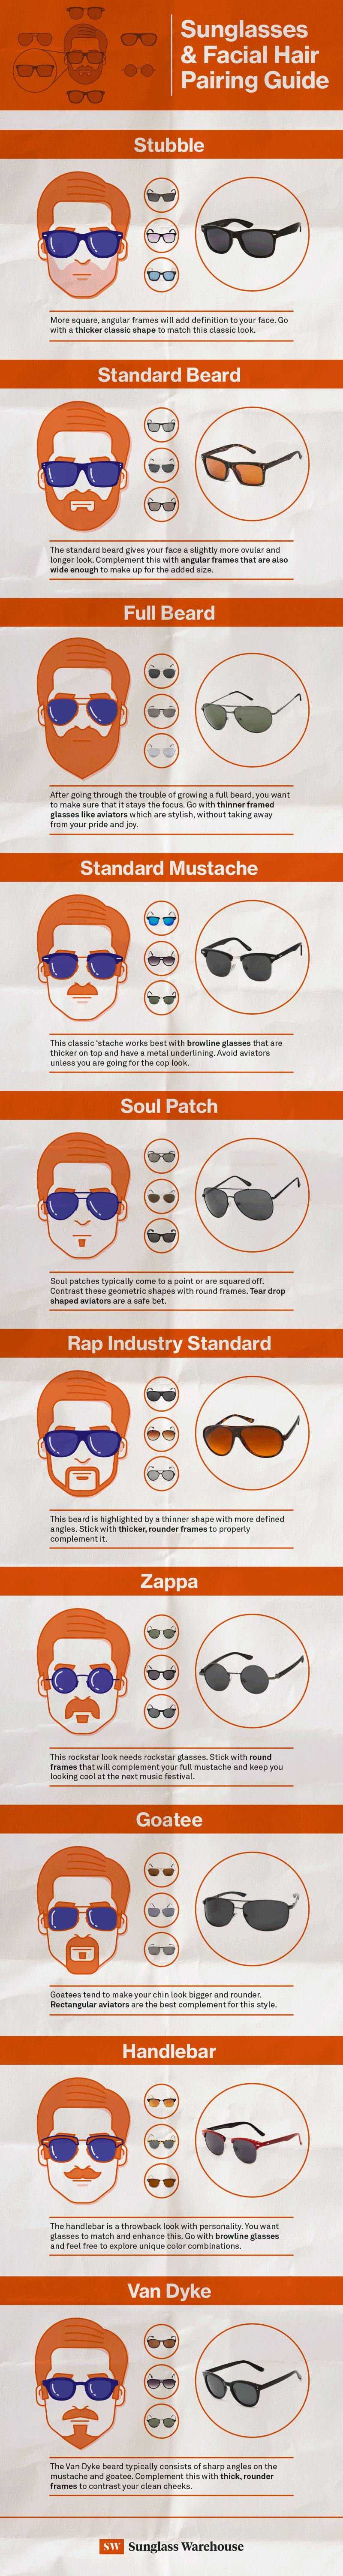 Sunglasses, and Facial Hair Guide